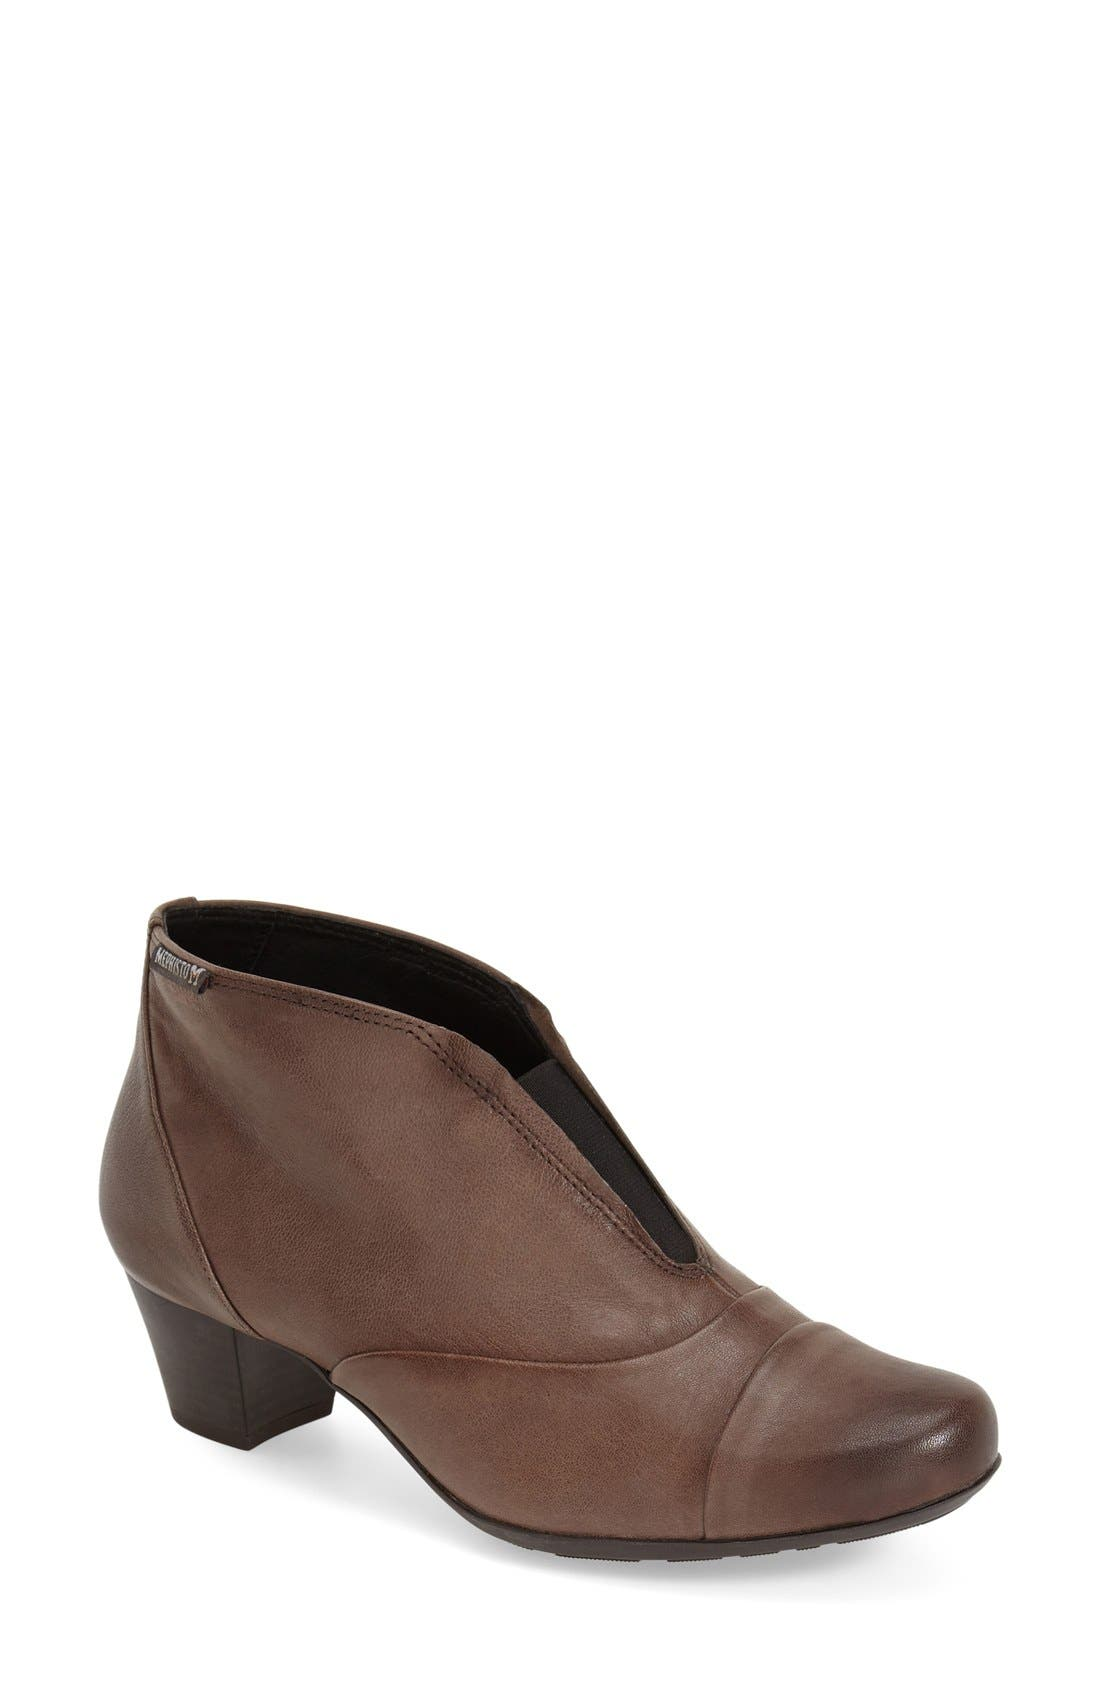 'Maddie' Bootie,                         Main,                         color, 250